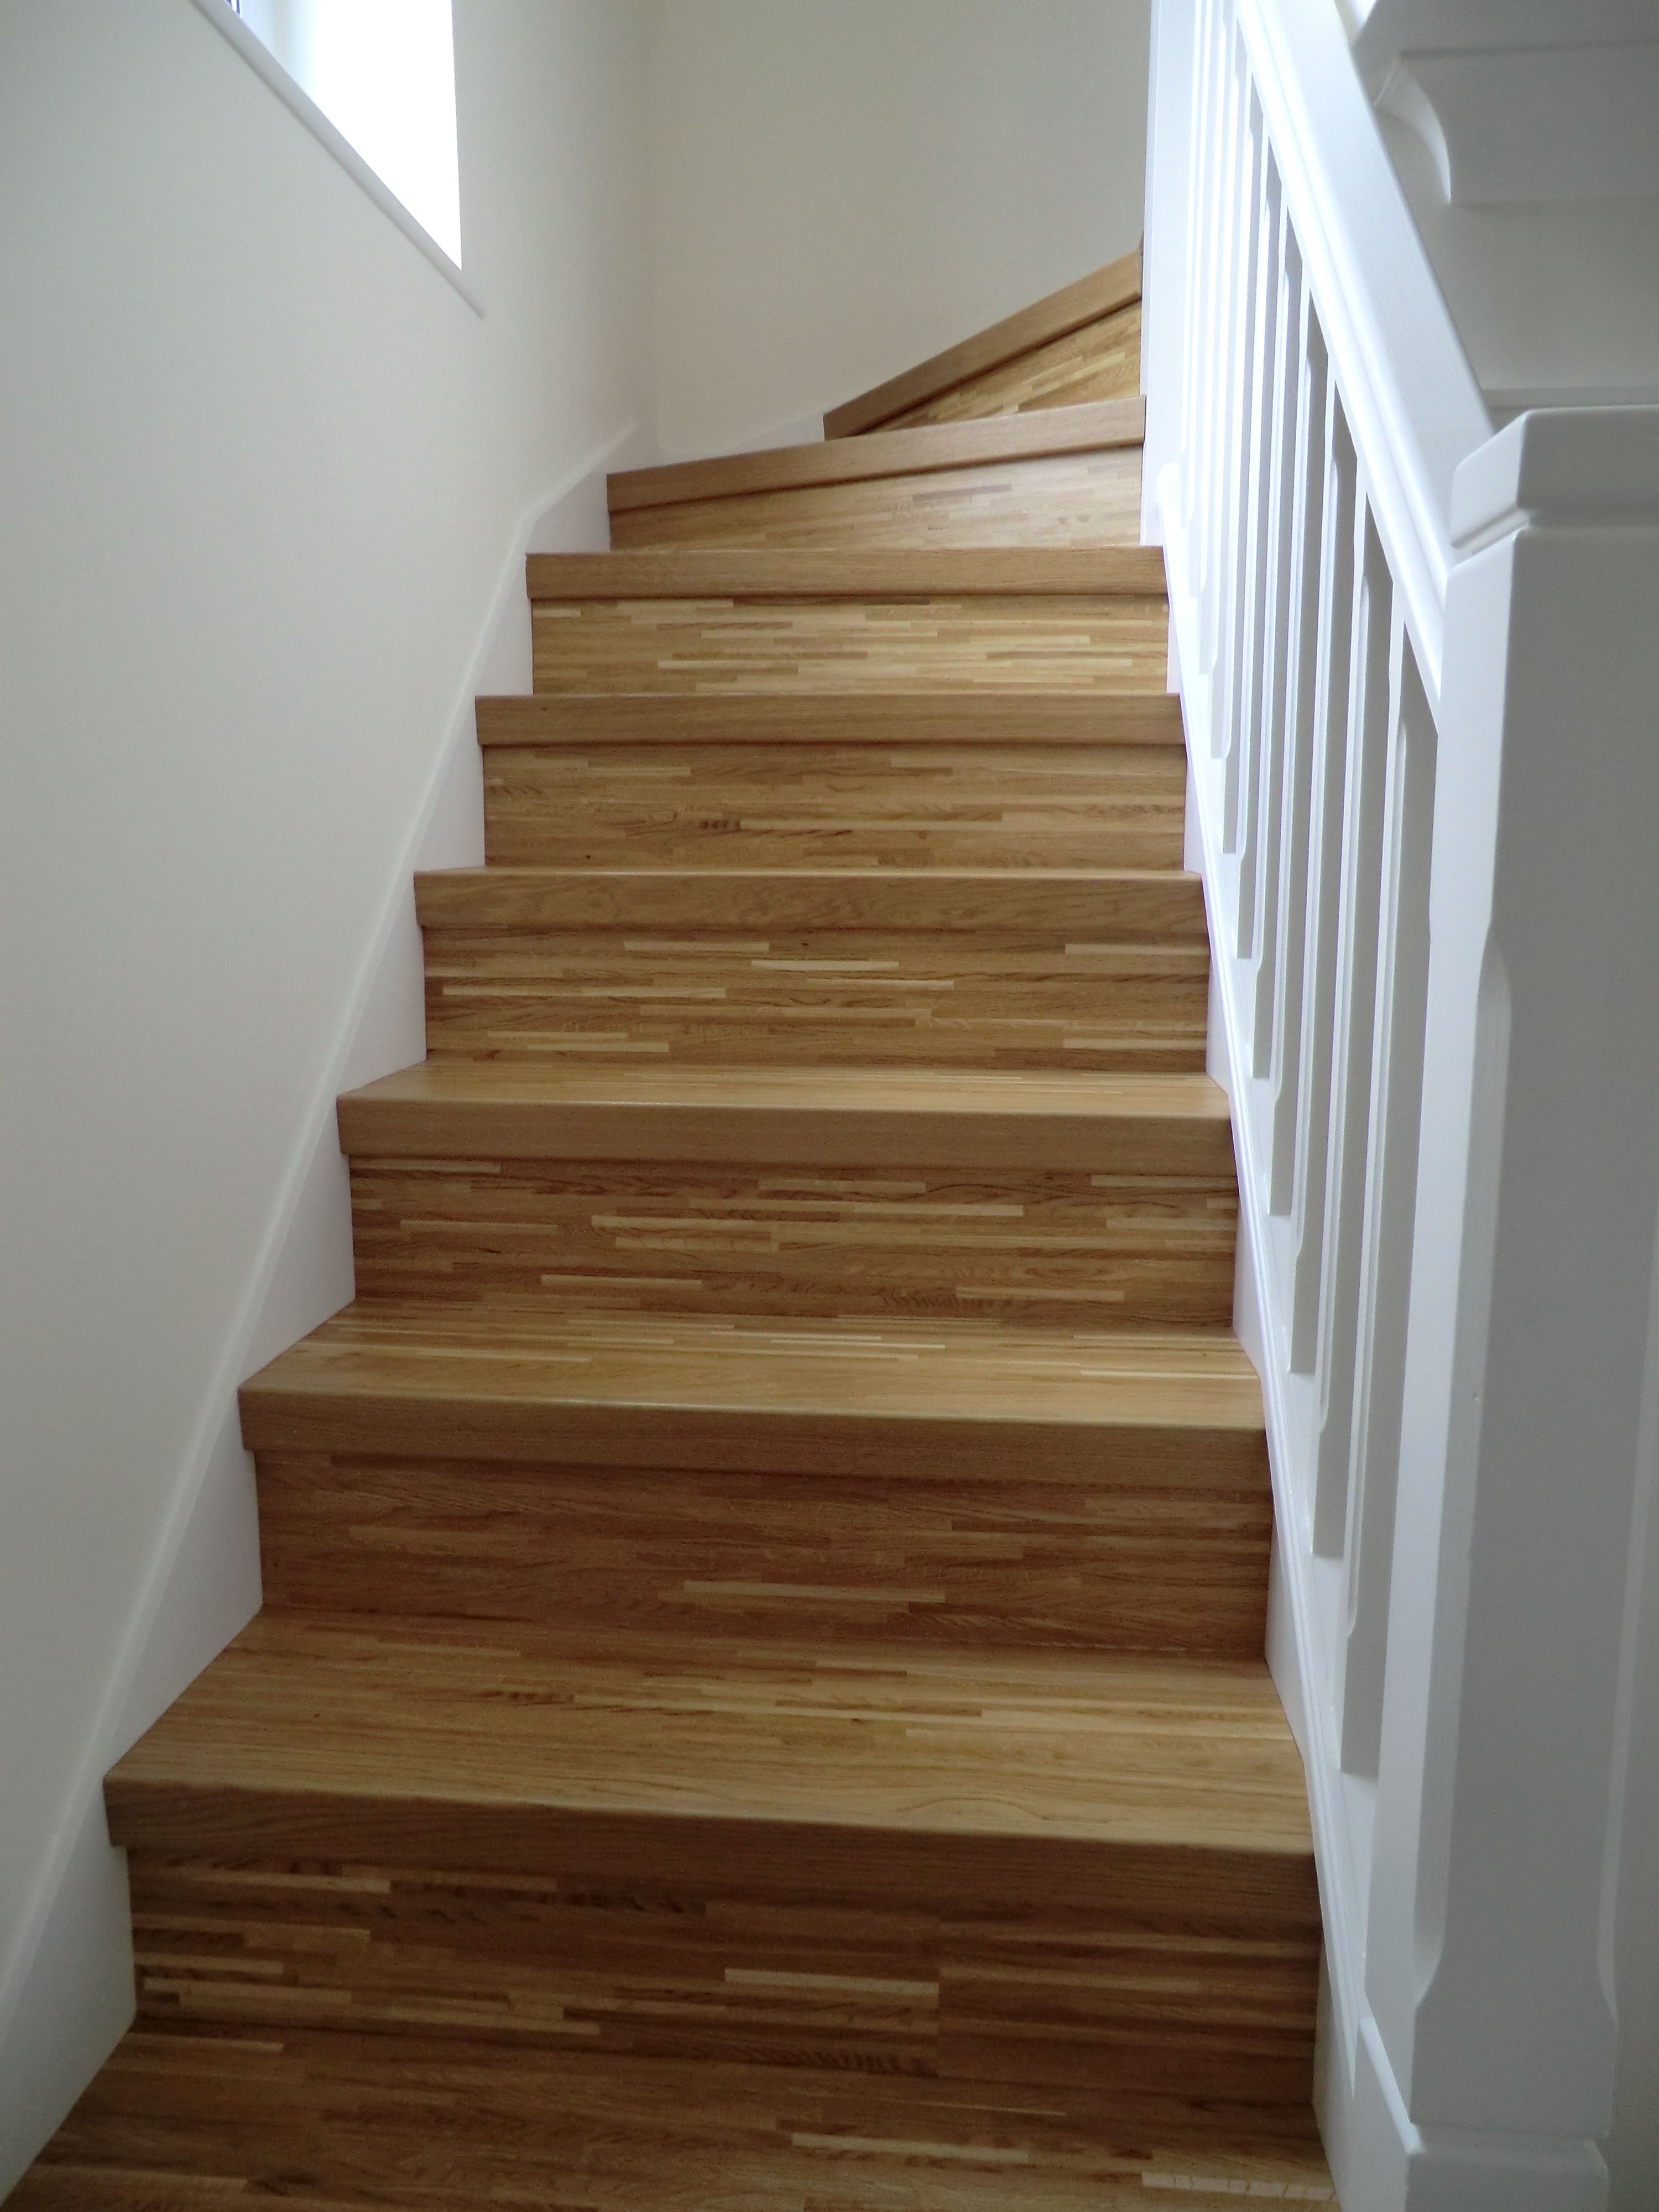 stairs you installing guide pexels on been by come for step install the right flooring wondering place floors laminate photo to if have how lamiante